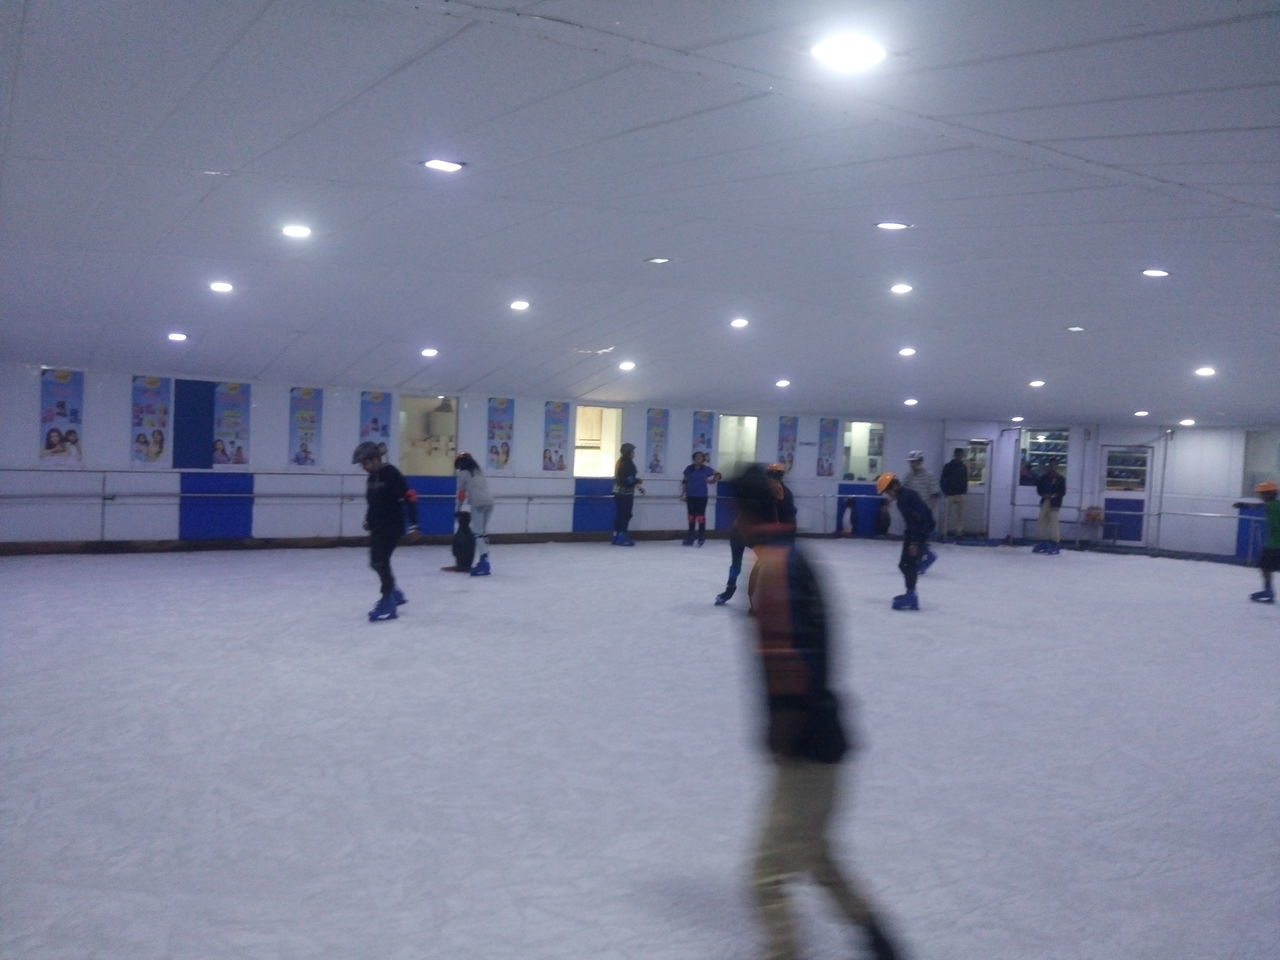 illuminated, leisure activity, lighting equipment, indoors, built structure, real people, walking, ice-skating, winter sport, men, ice rink, sport, lifestyles, women, architecture, ice skate, competition, day, people